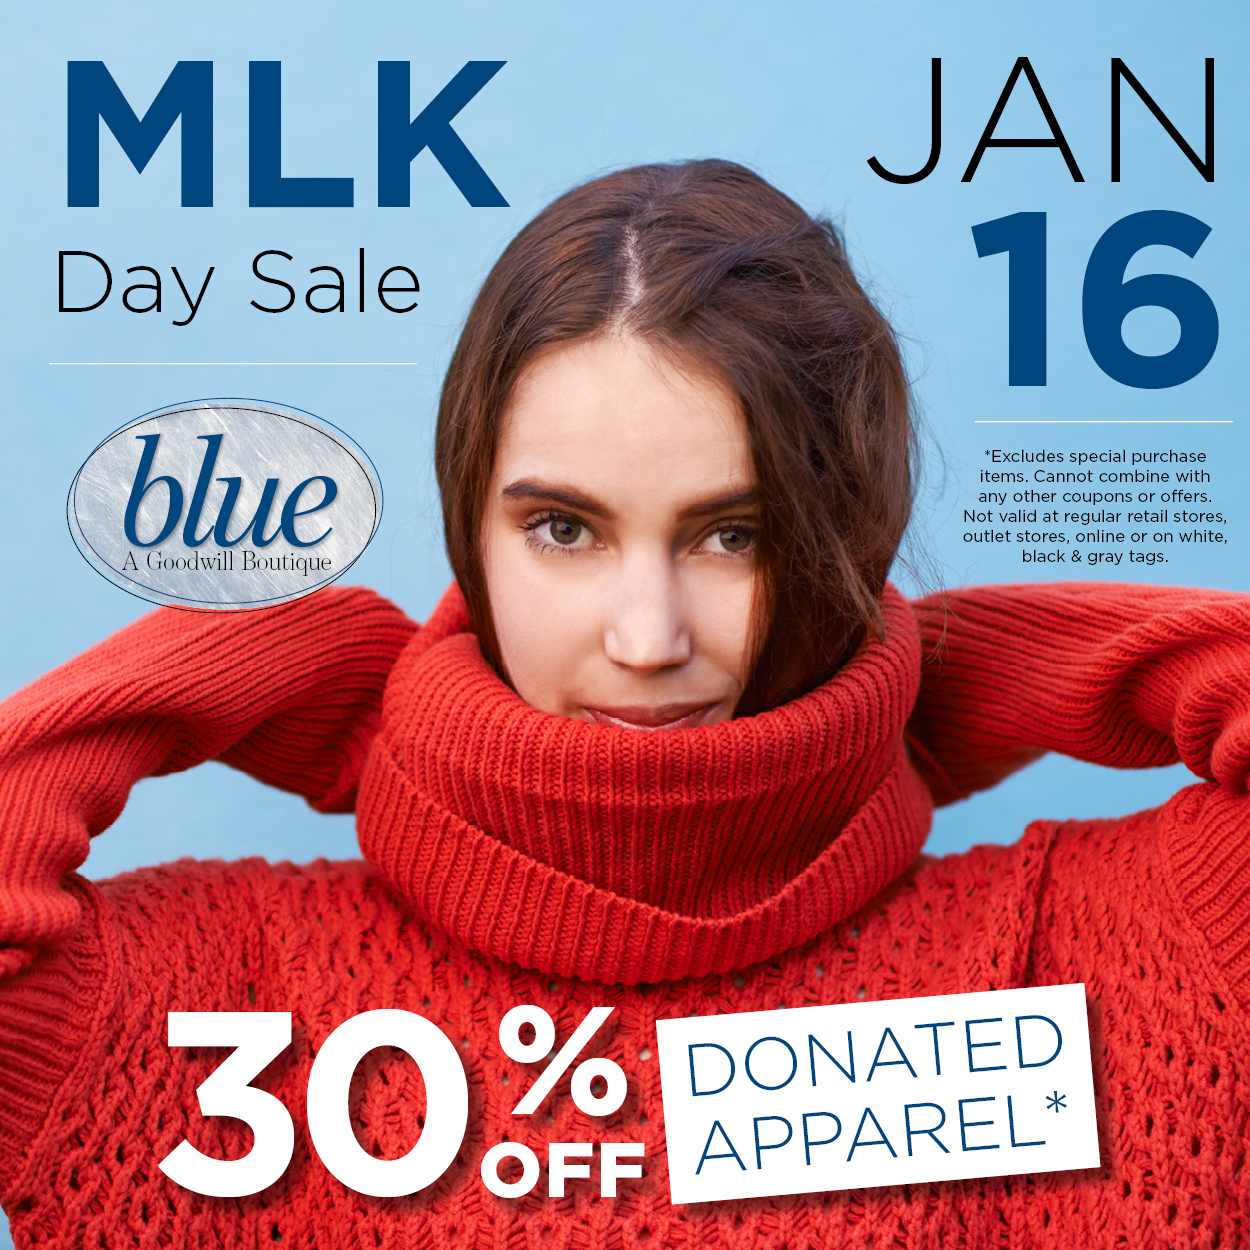 MLK Day Sale at blue boutiques 30% off donated apparel